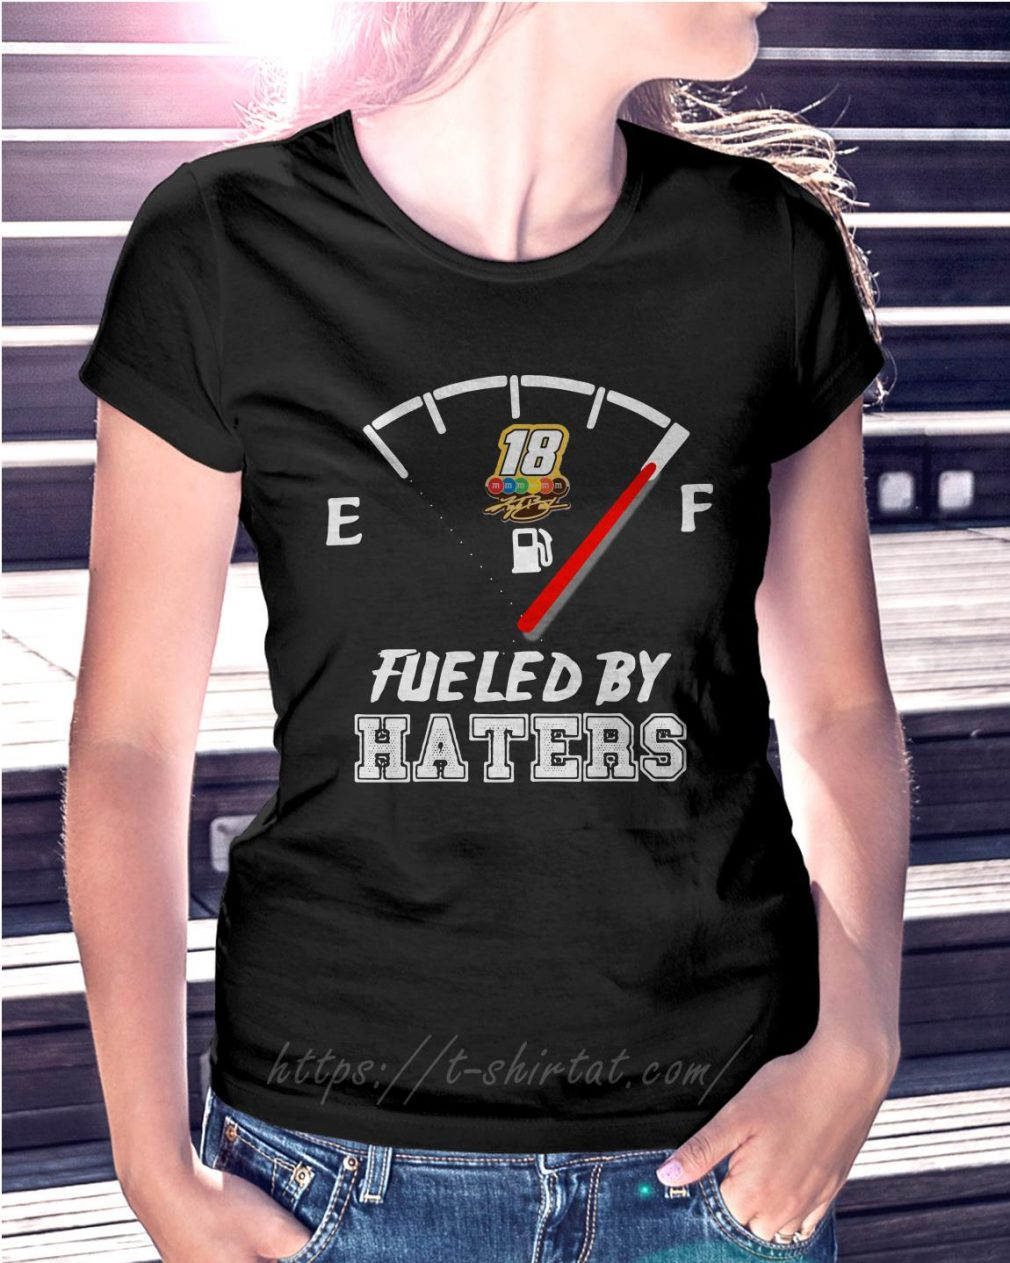 Kyle Busch fueled by haters Ladies Tee